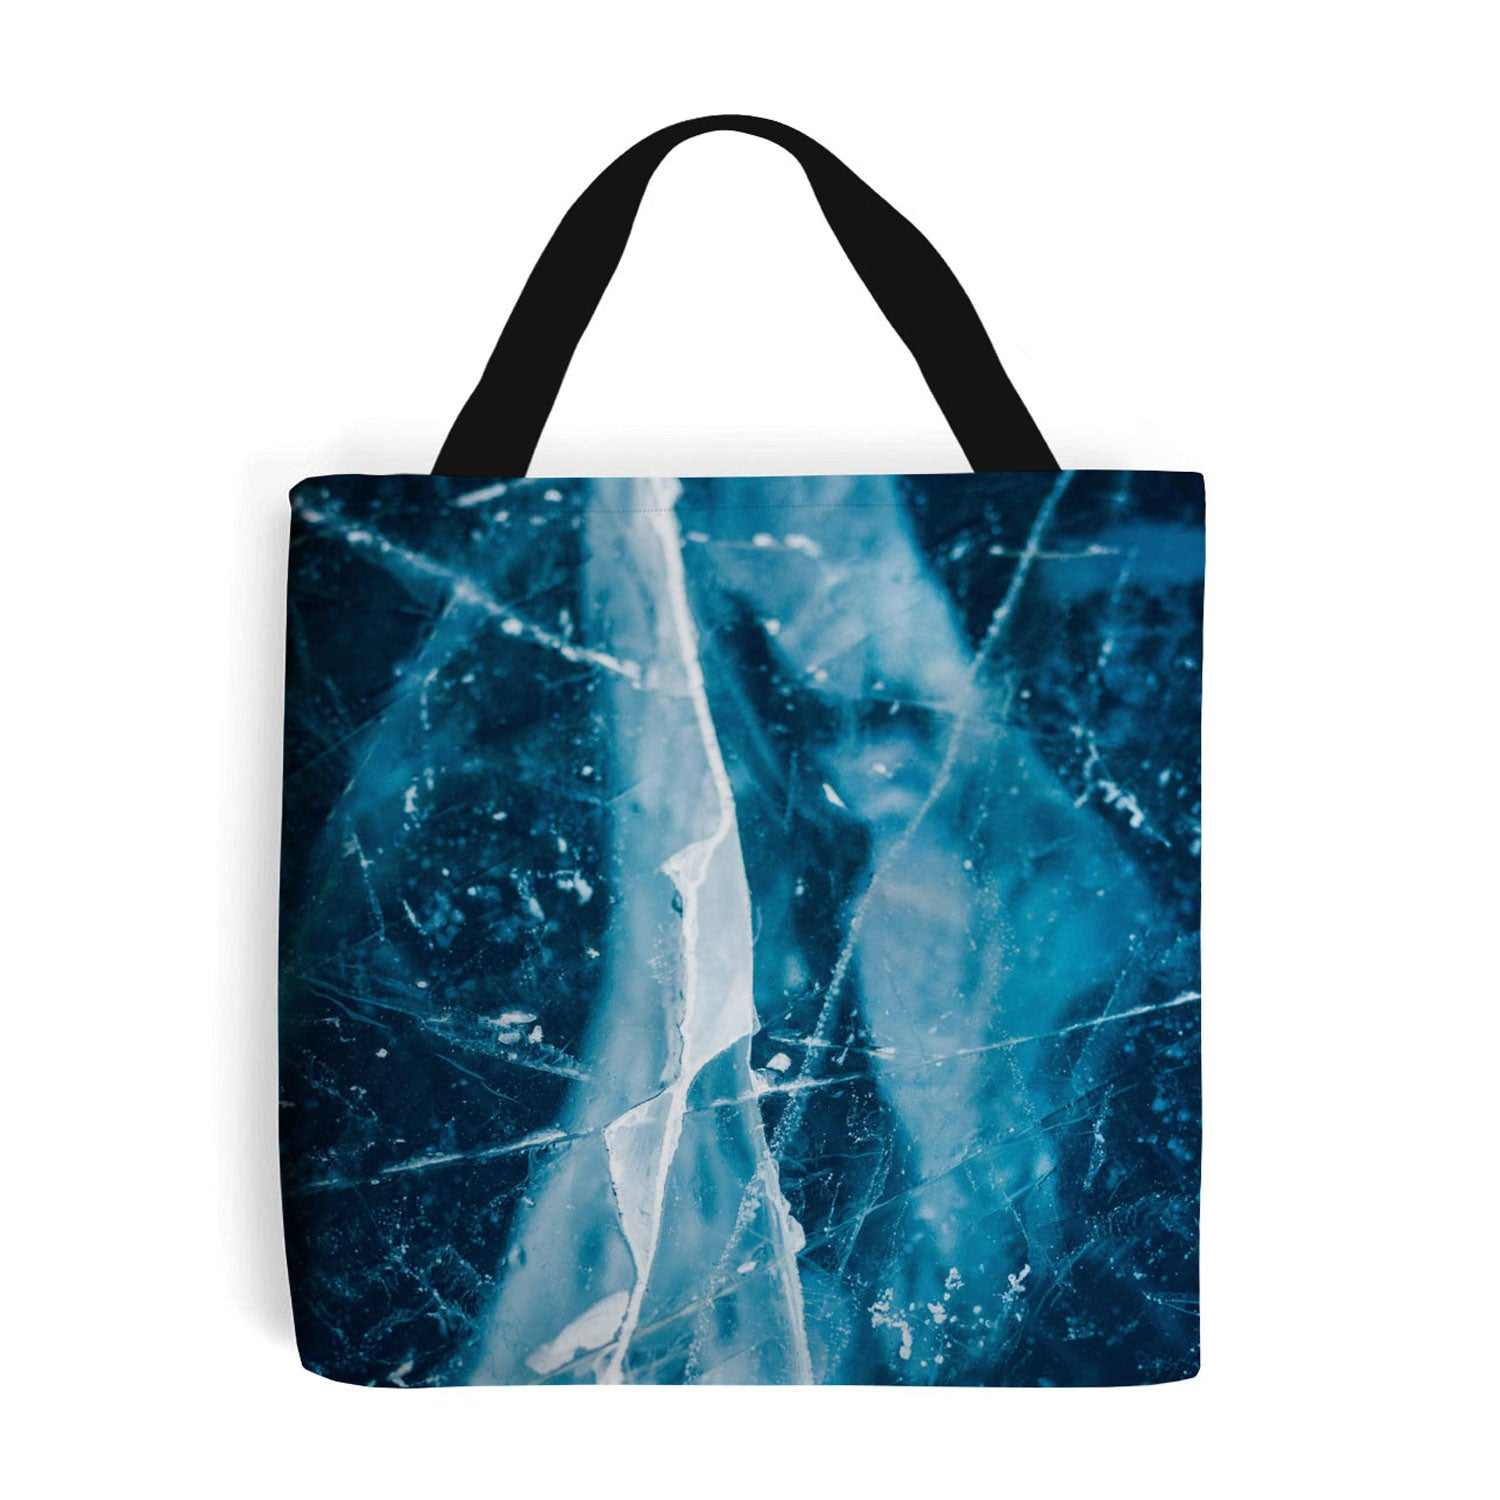 shopping bag with blue cracked ice image on the side